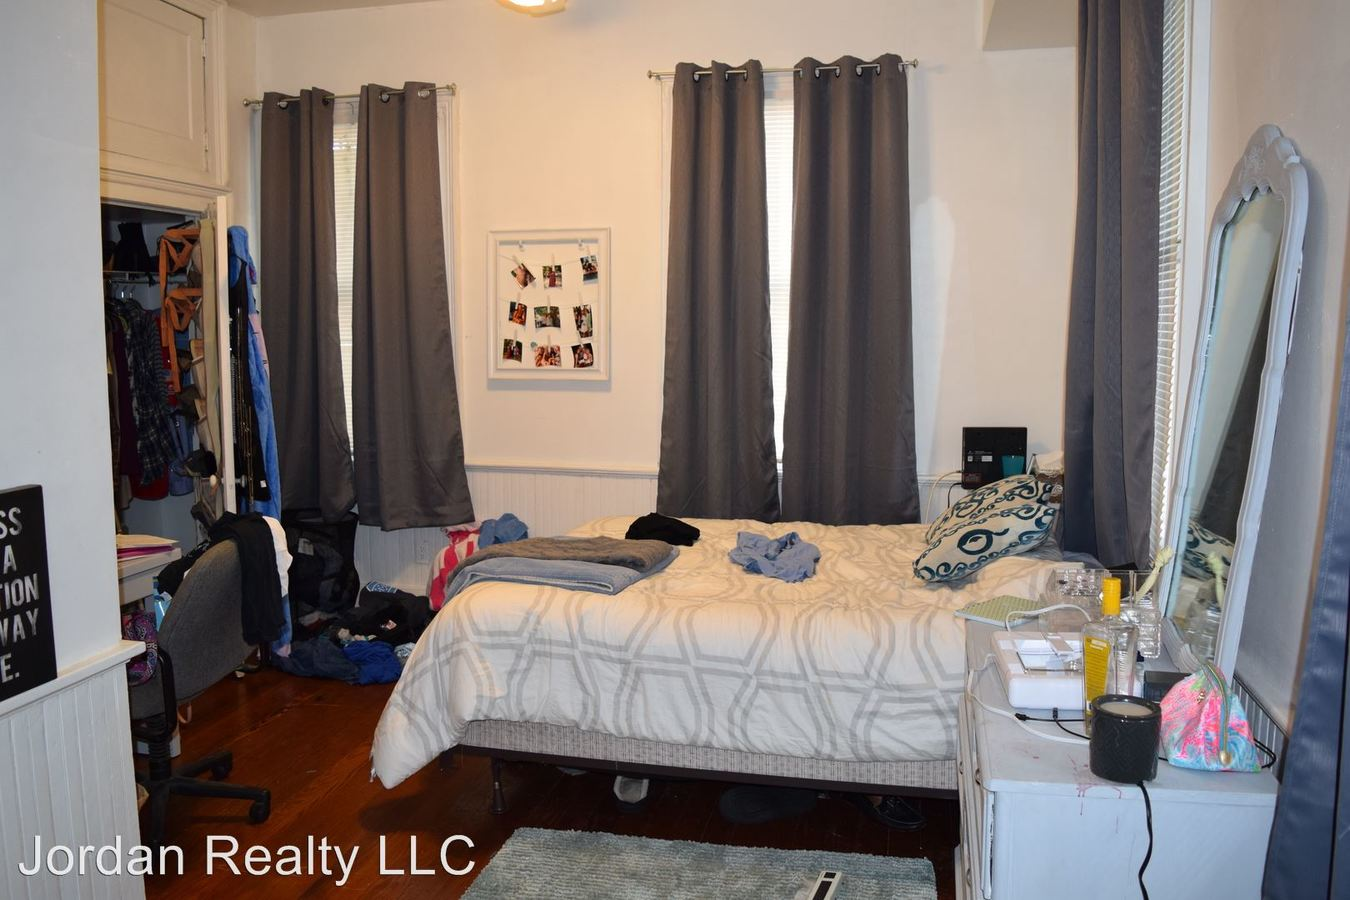 3 Bedrooms 2 Bathrooms Apartment for rent at 121 Coming Street in Charleston, SC